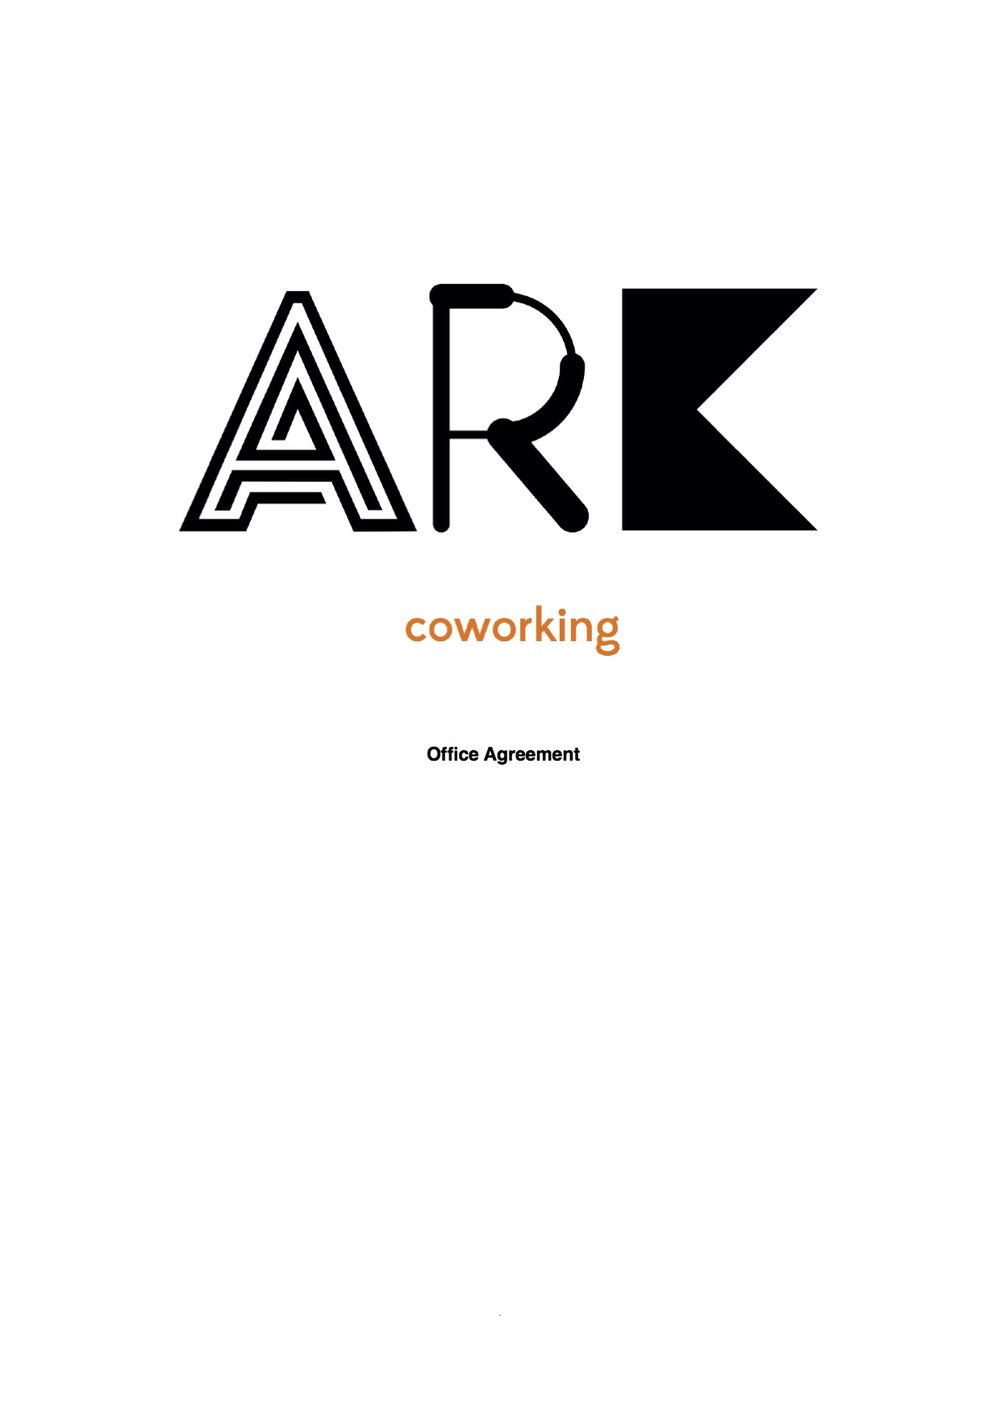 ARK coworking T&Cs - Office Agreement.jpg